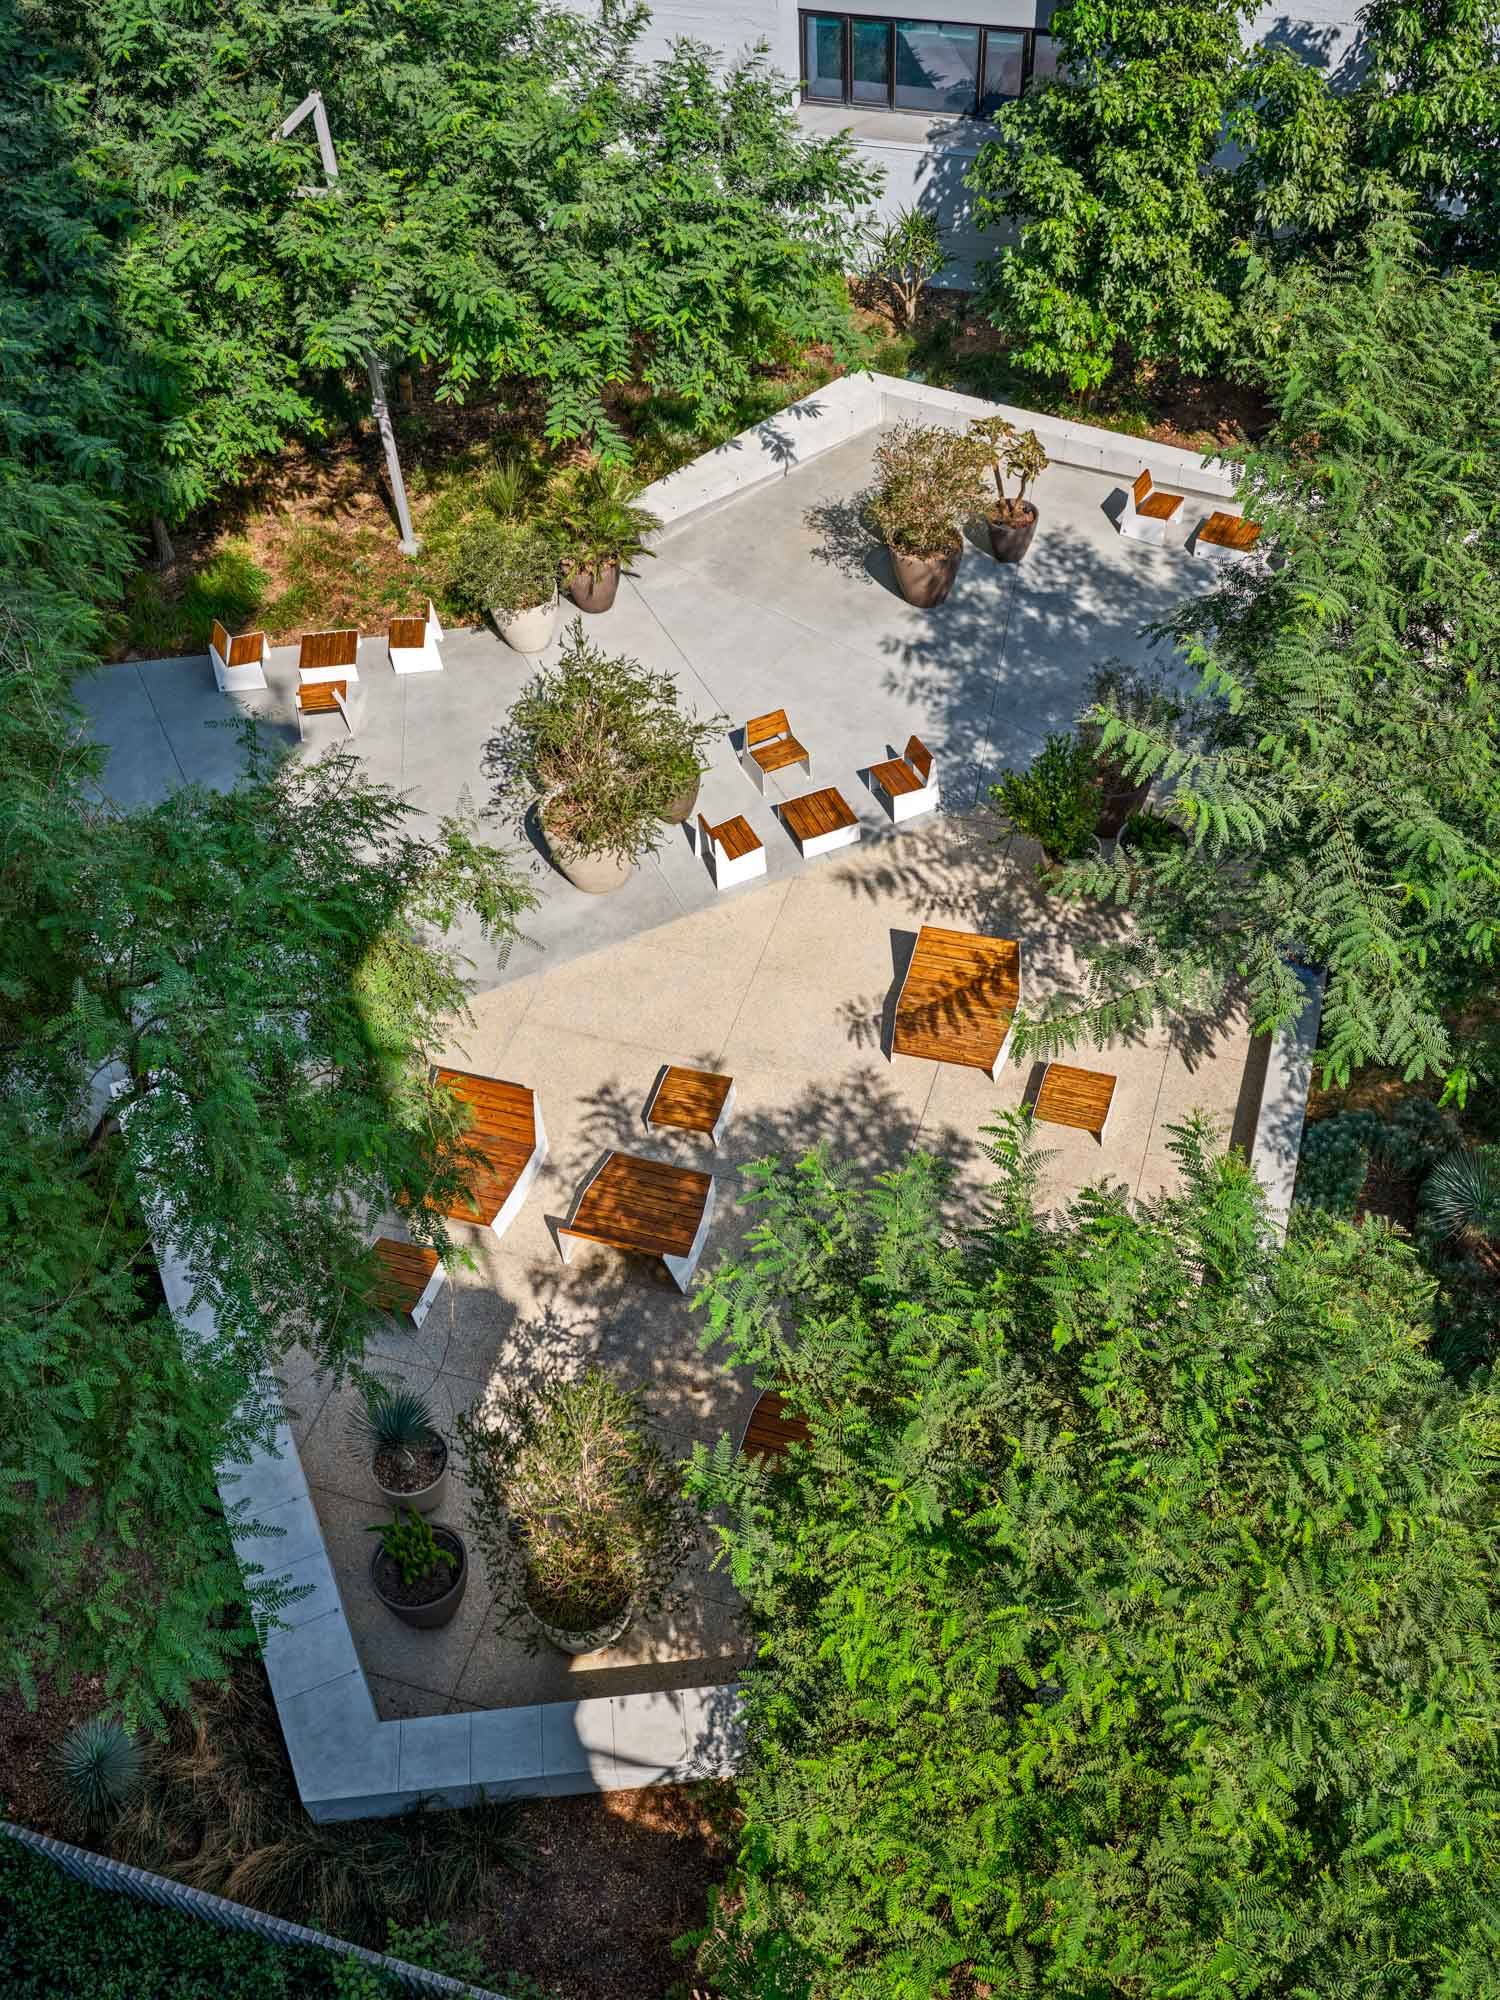 aerial view of south park commons with wooden furniture on a cement patio and trees forming a canopy around the perimeter